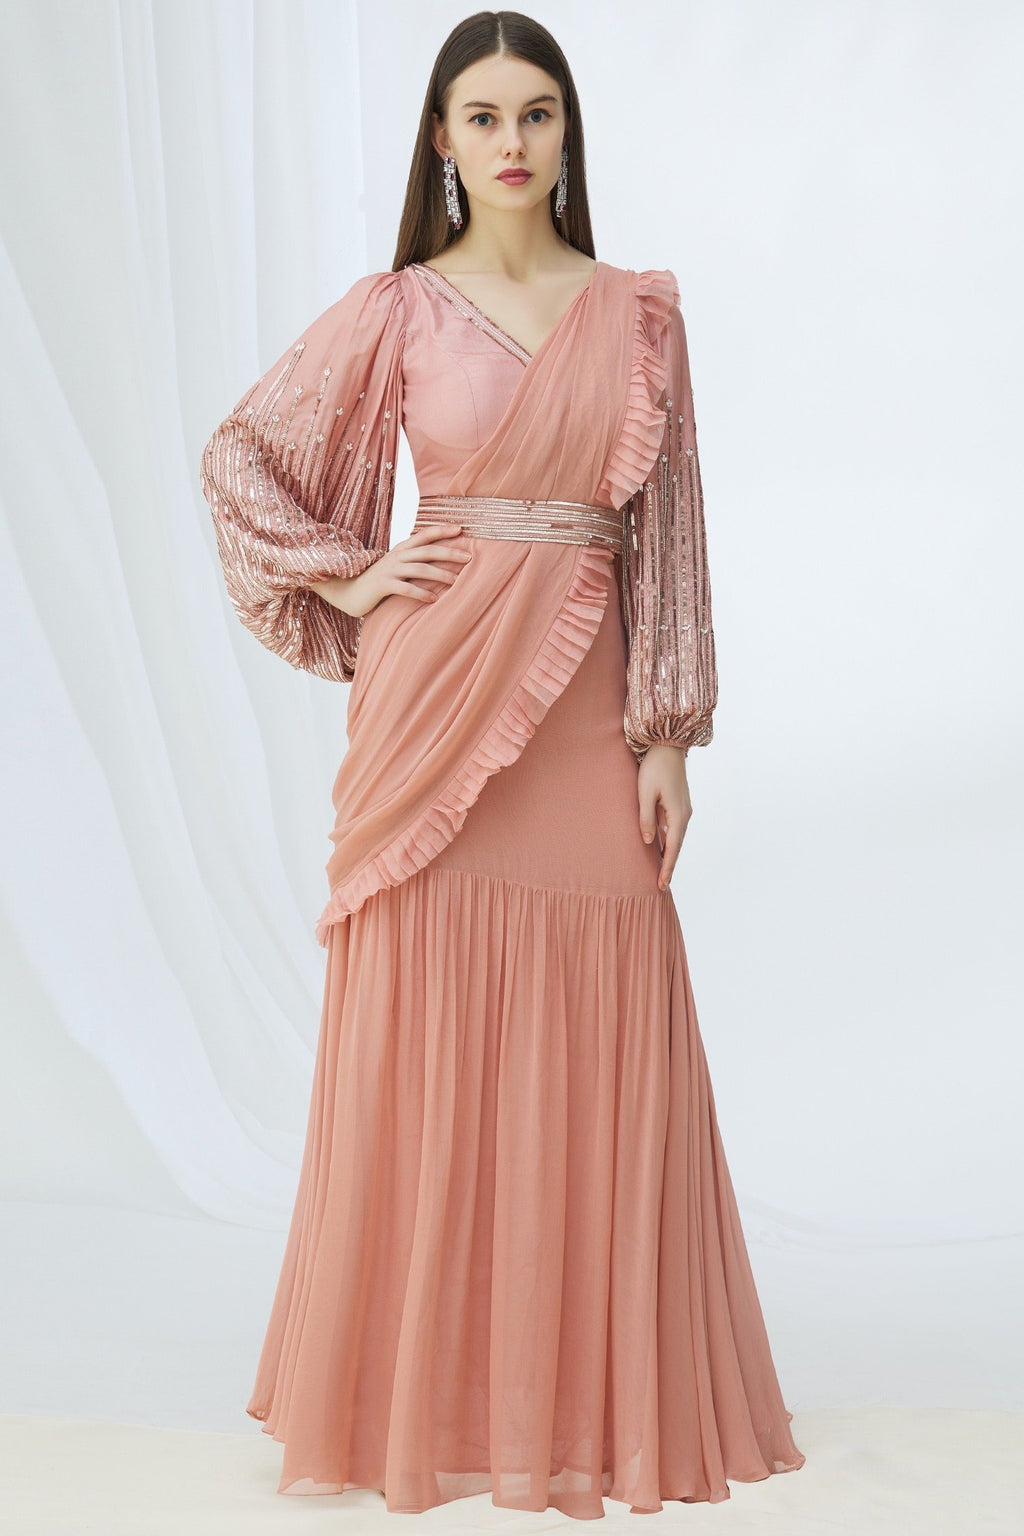 Pink pre draped saree, embroidered blouse & belt Chhavvi Aggarwal